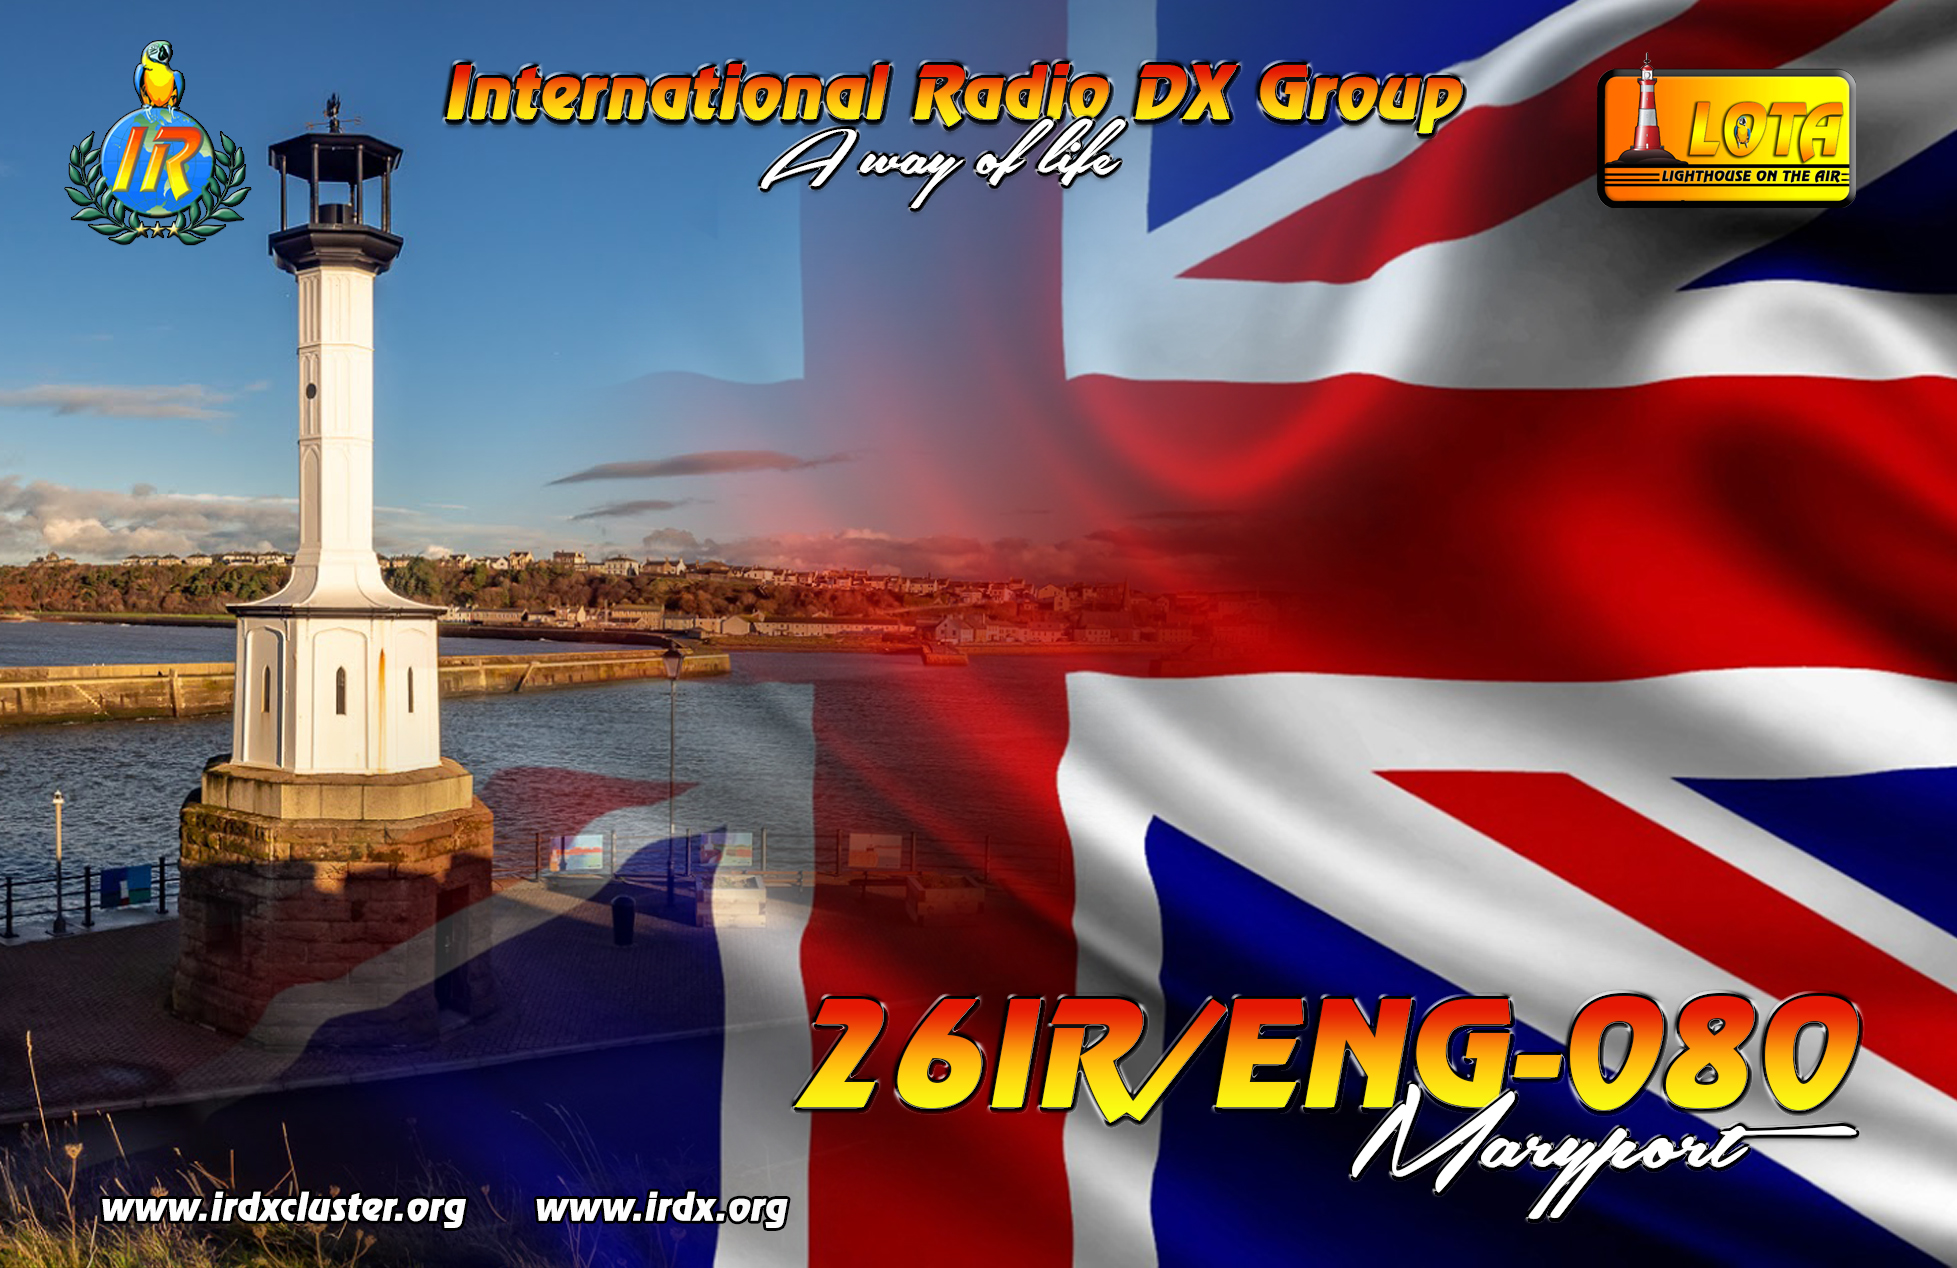 26IR/ENG280 Maryport Lighthouse (LOTA)